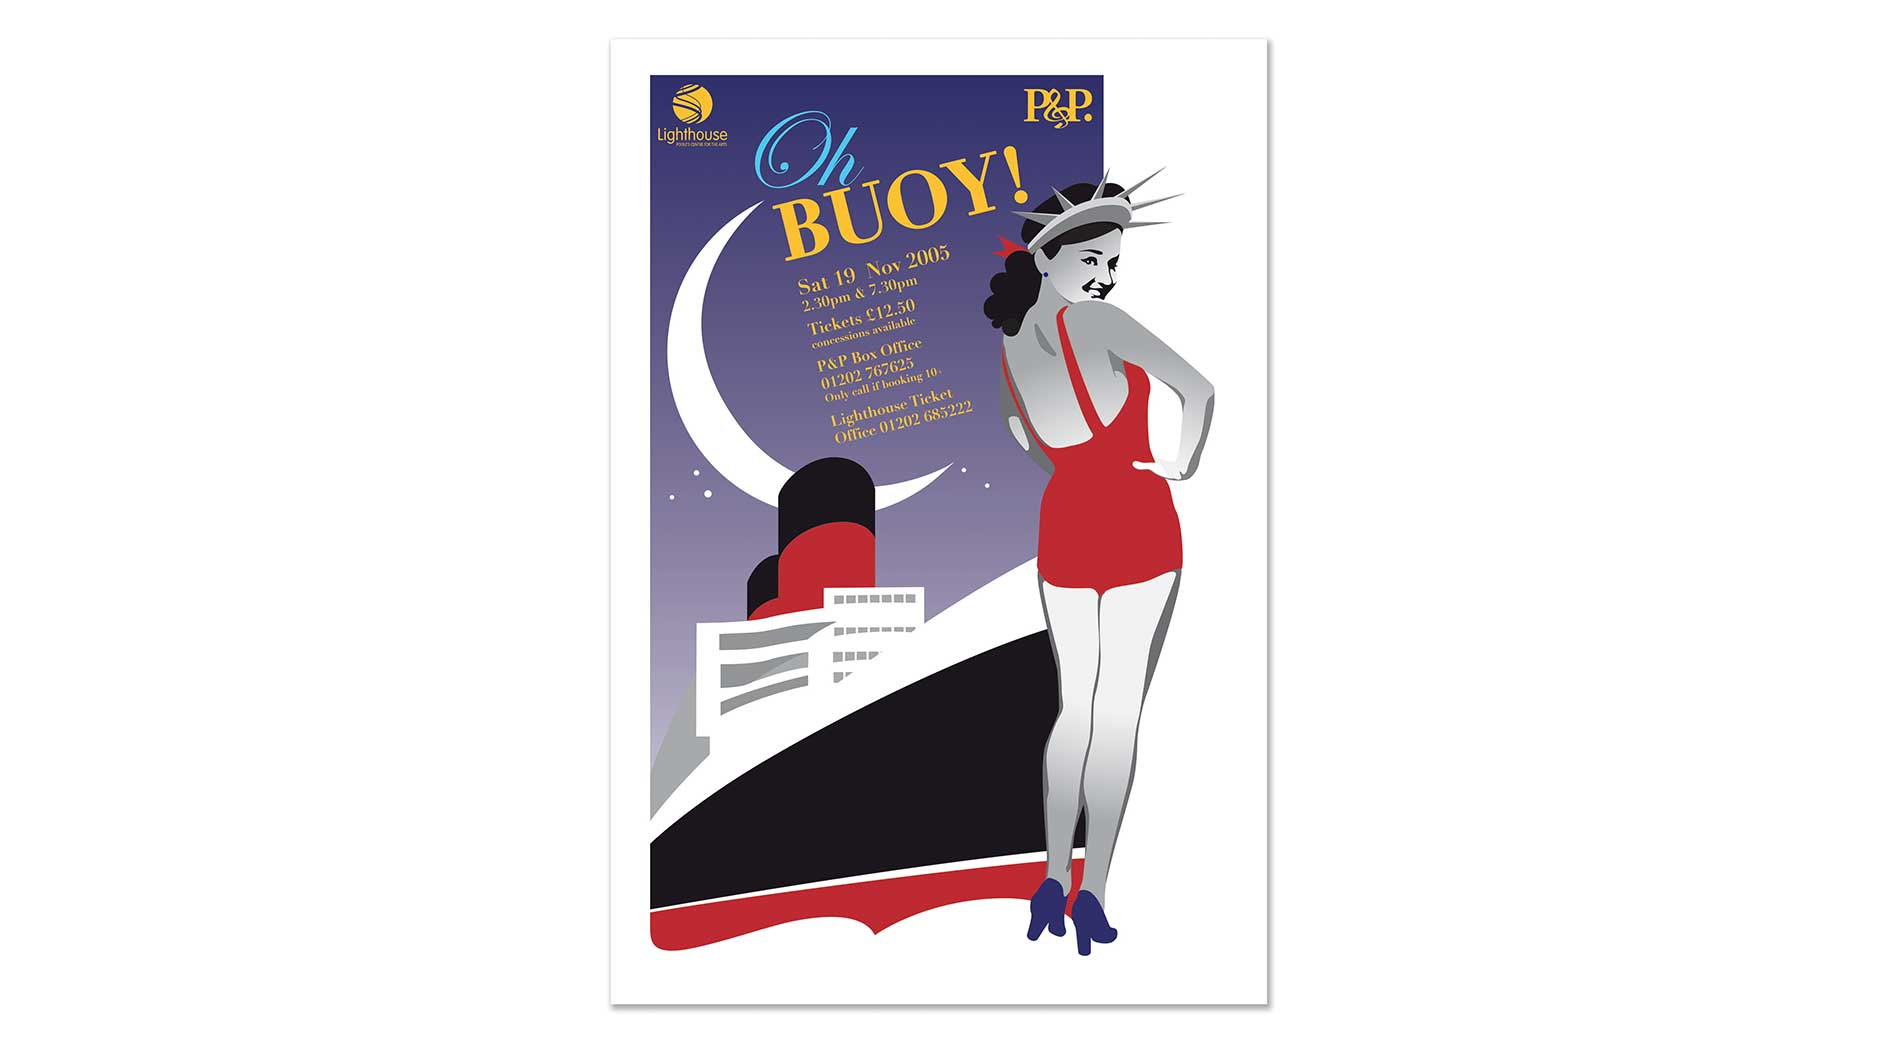 Oh Buoy poster design